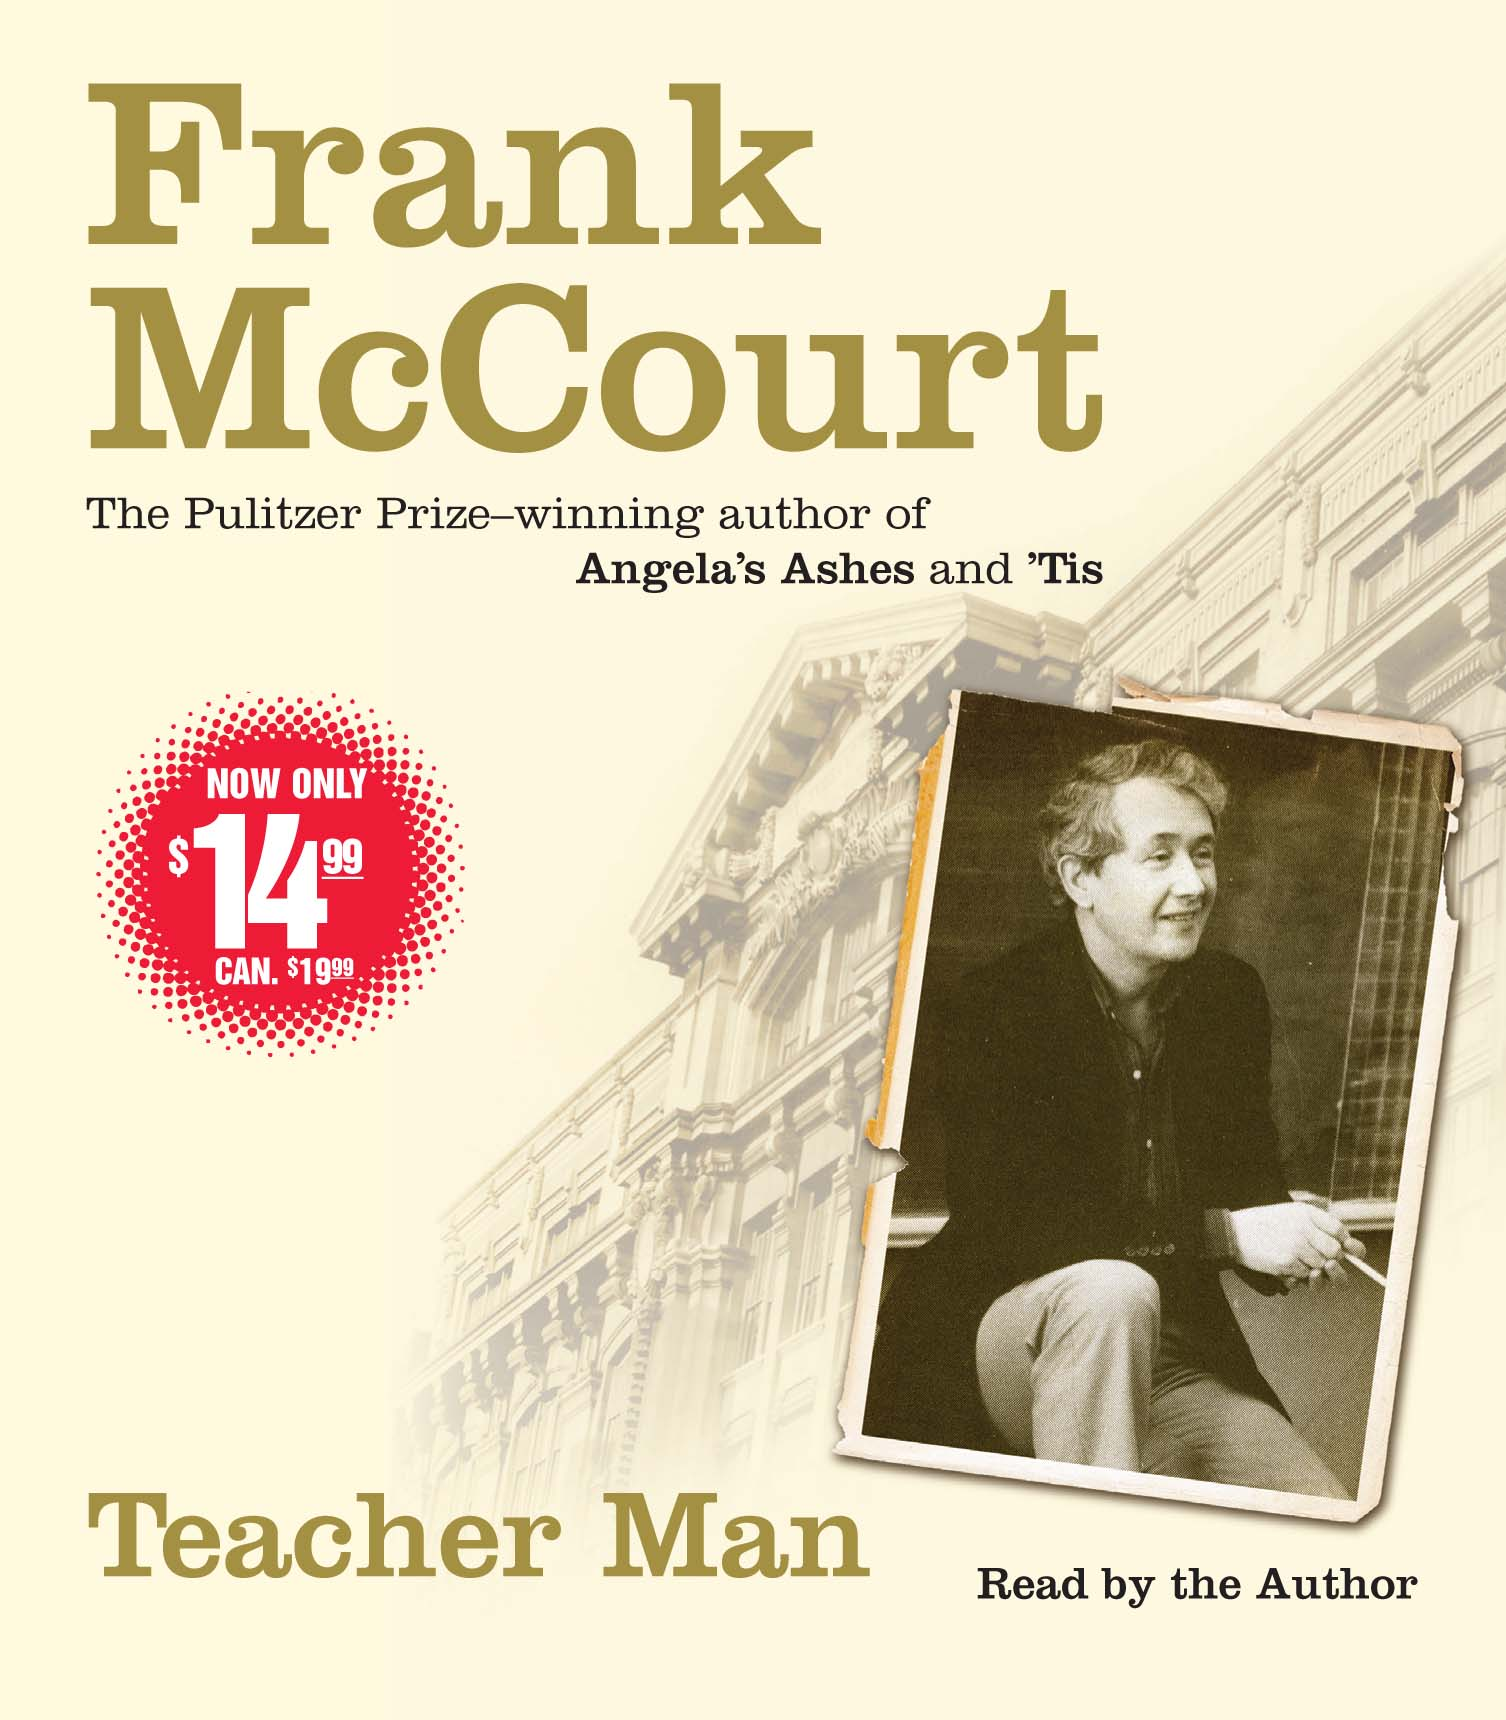 frank mccourt teacher man Mccourt's latest memoir focuses on what 'tis (1999) gave short shrift to: his life as a teacher.